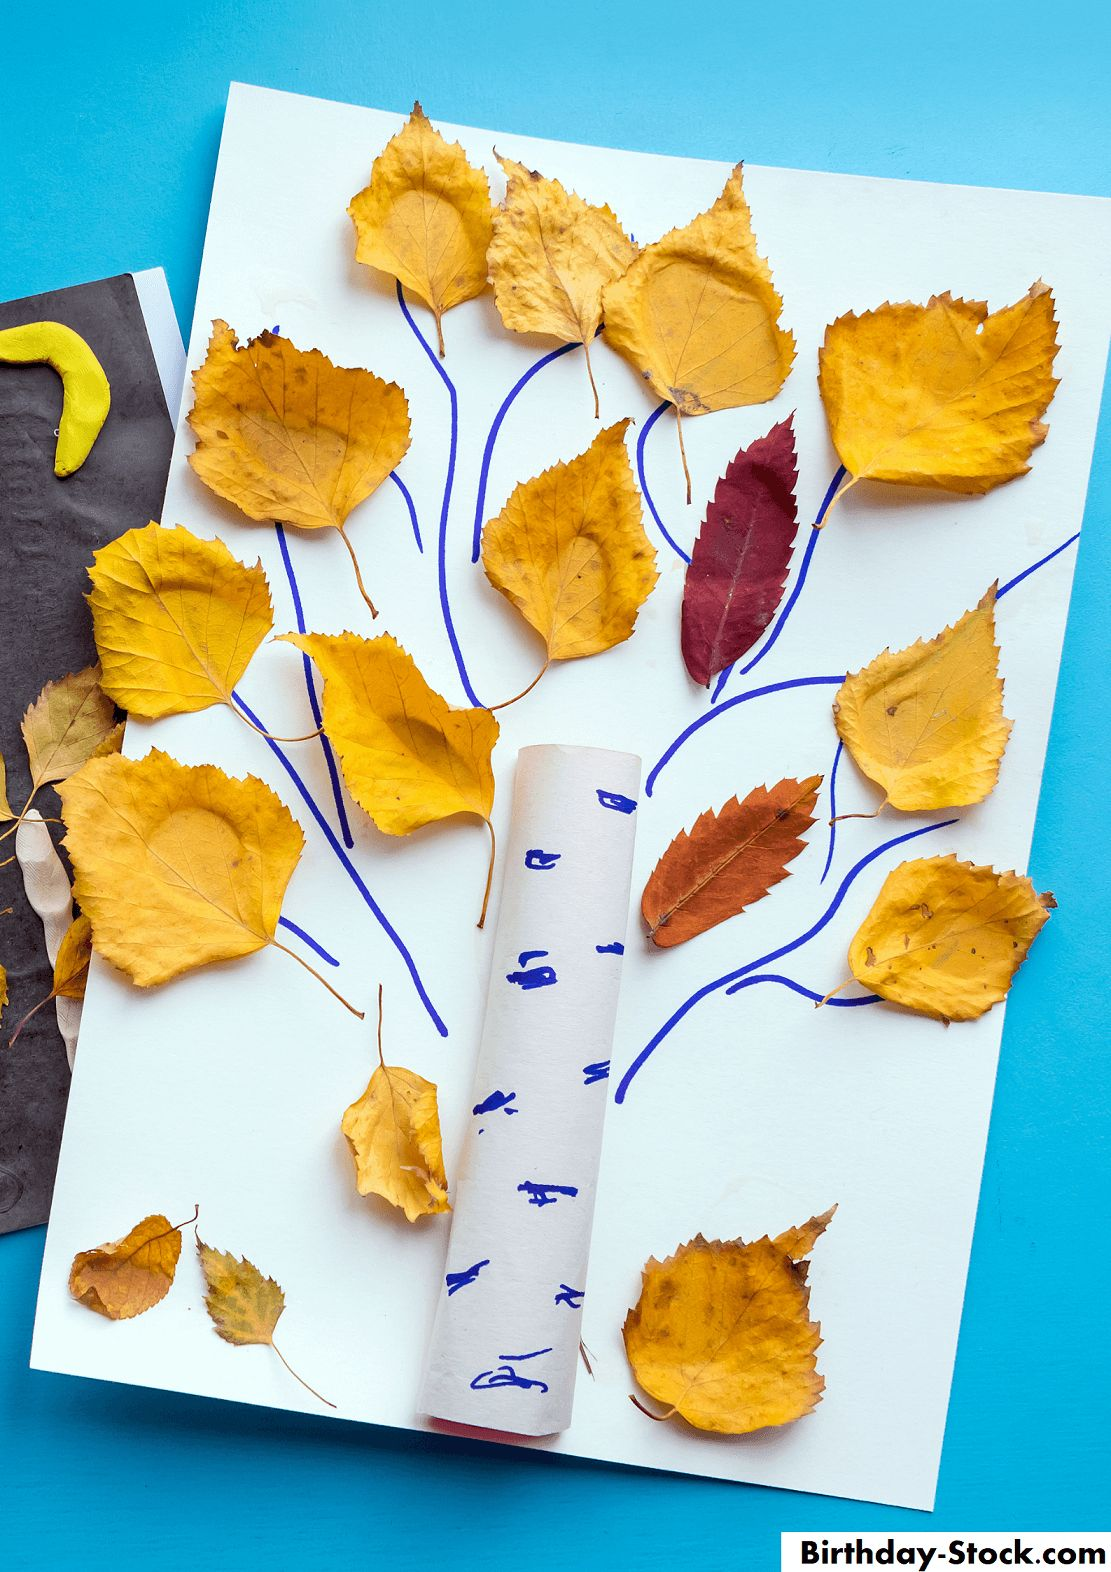 05+ Thanksgiving Crafts 2020 Ideas for this Thanksgiving Day